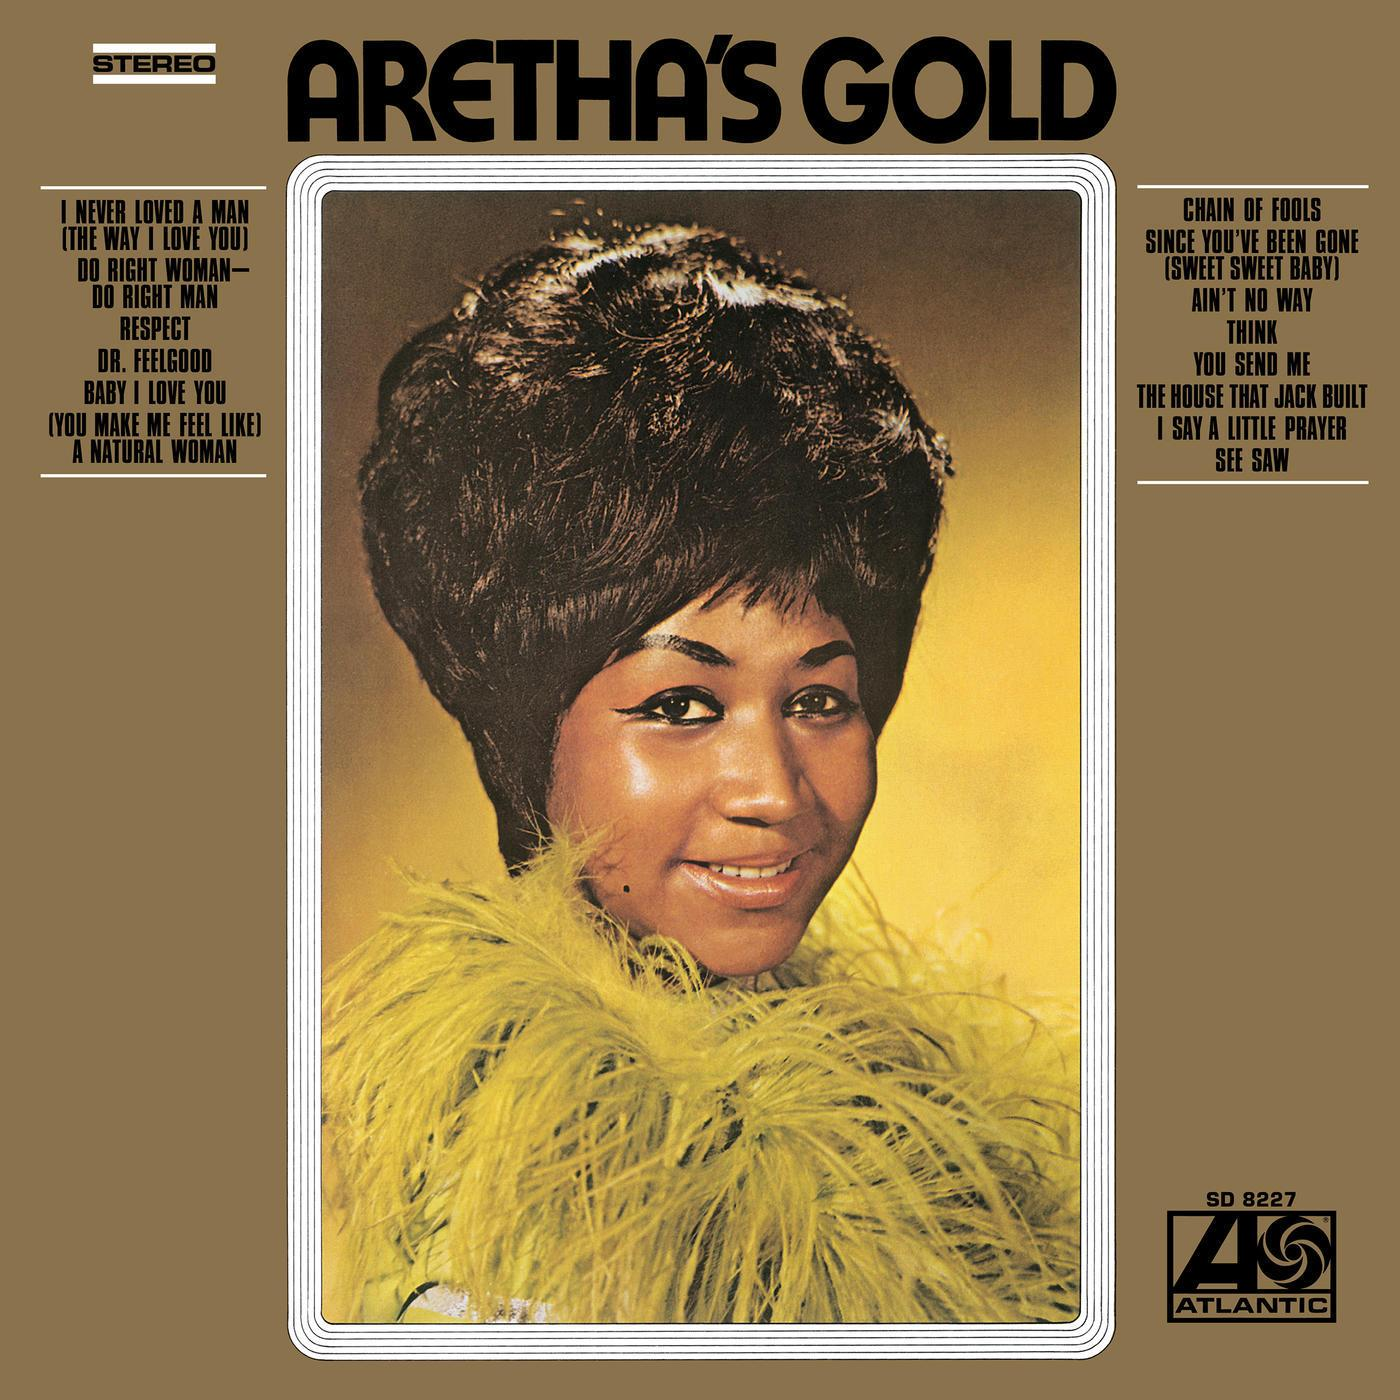 Aretha's Gold (Limited IndieGoldVinyl)